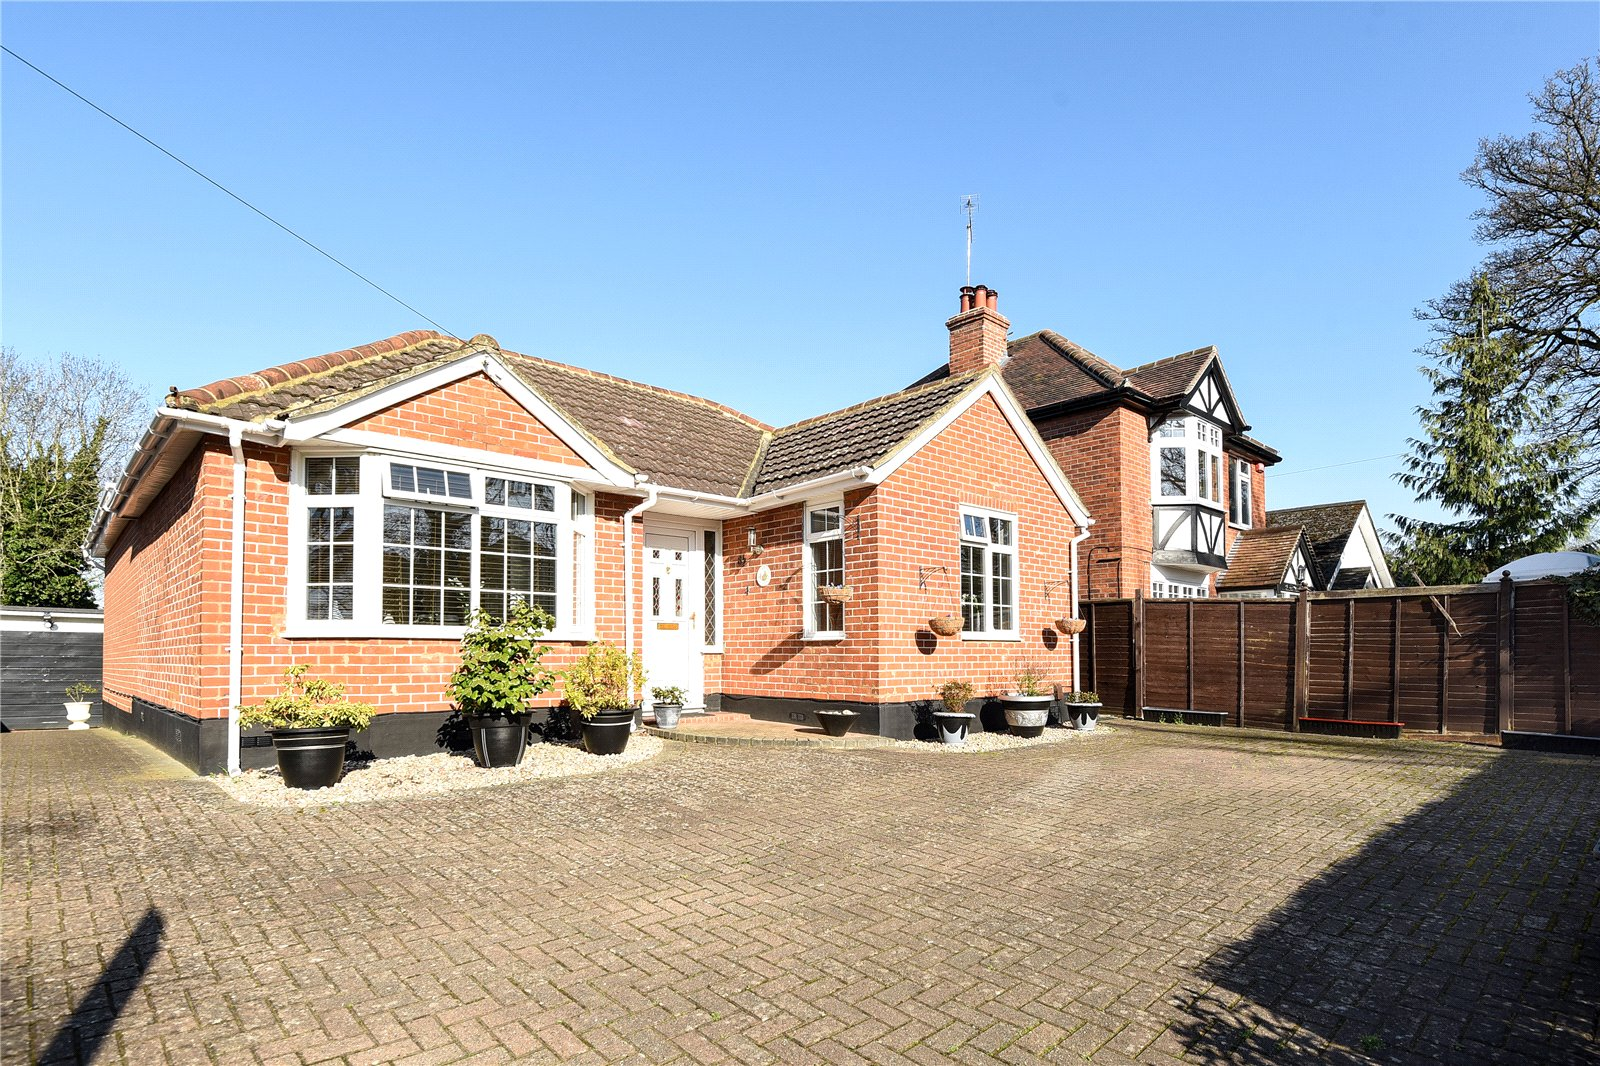 3 Bedrooms Detached Bungalow for sale in Reading Road, Wokingham, Berkshire, RG41